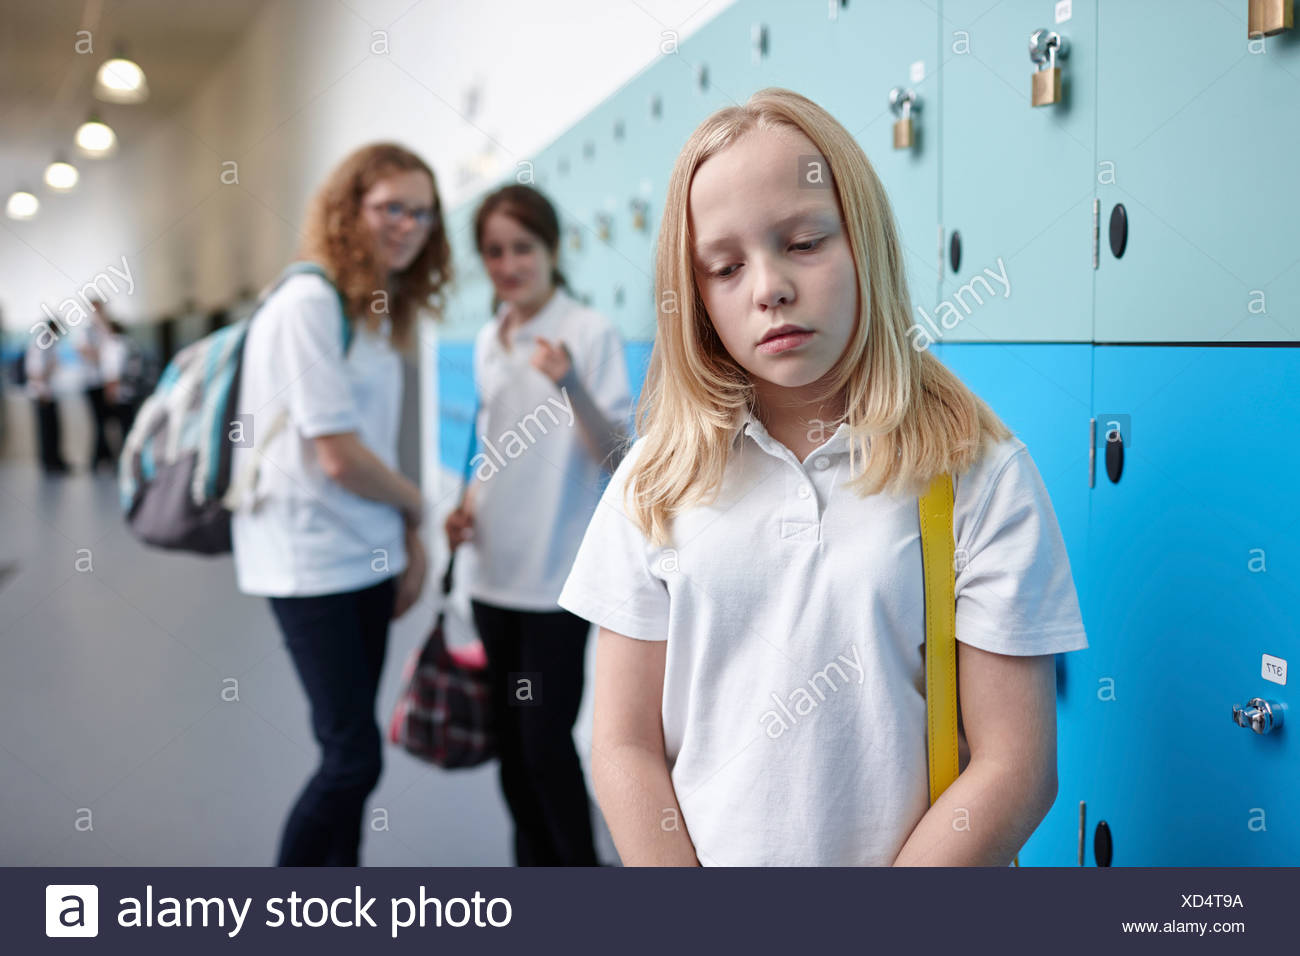 Schoolgirl being bullied in school corridor - Stock Image